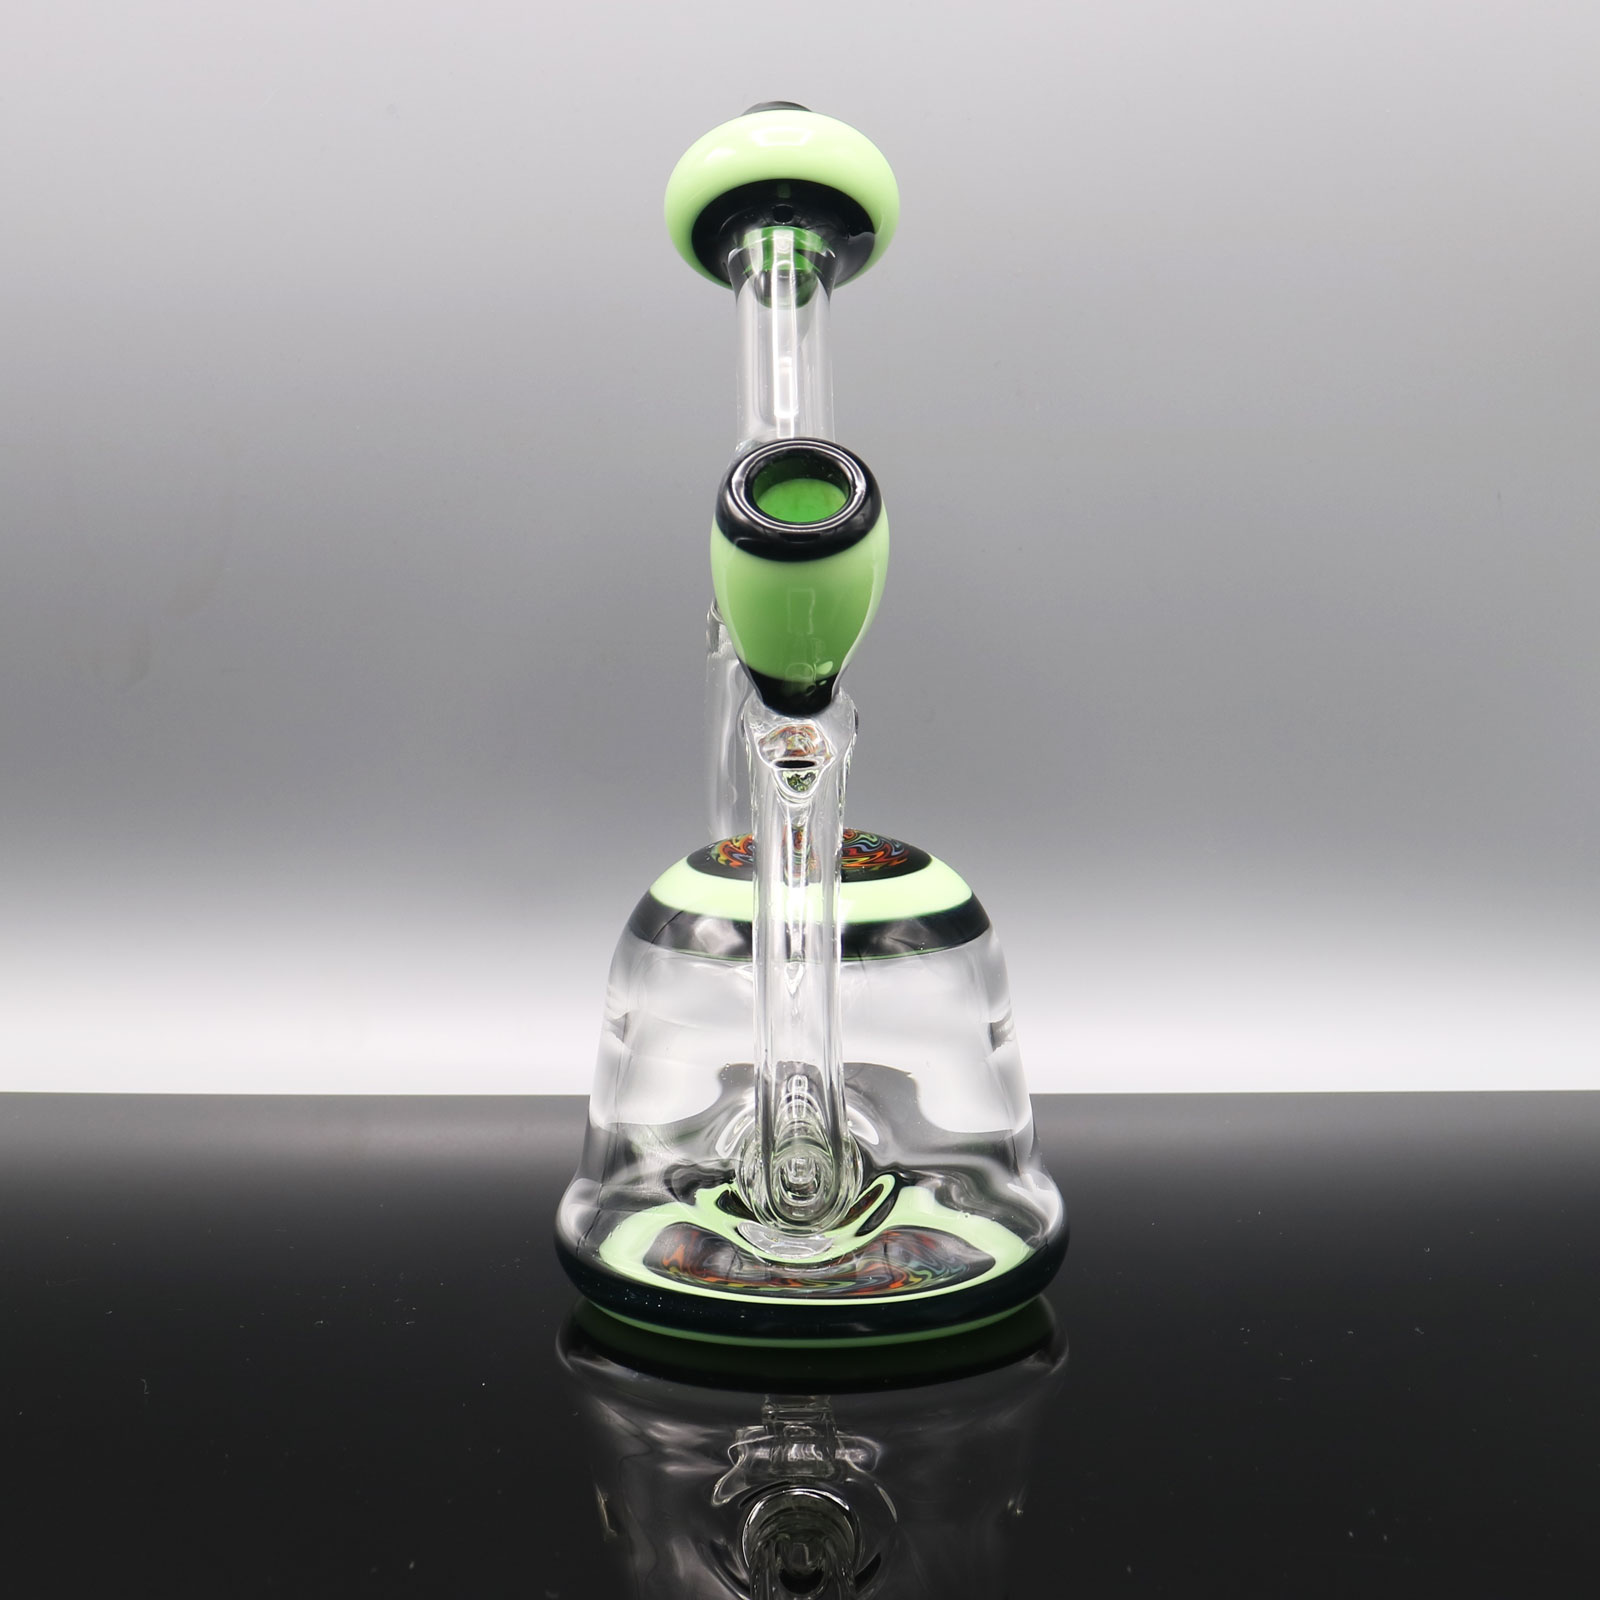 Chappell Glass – Blue and Green Banger Hanger